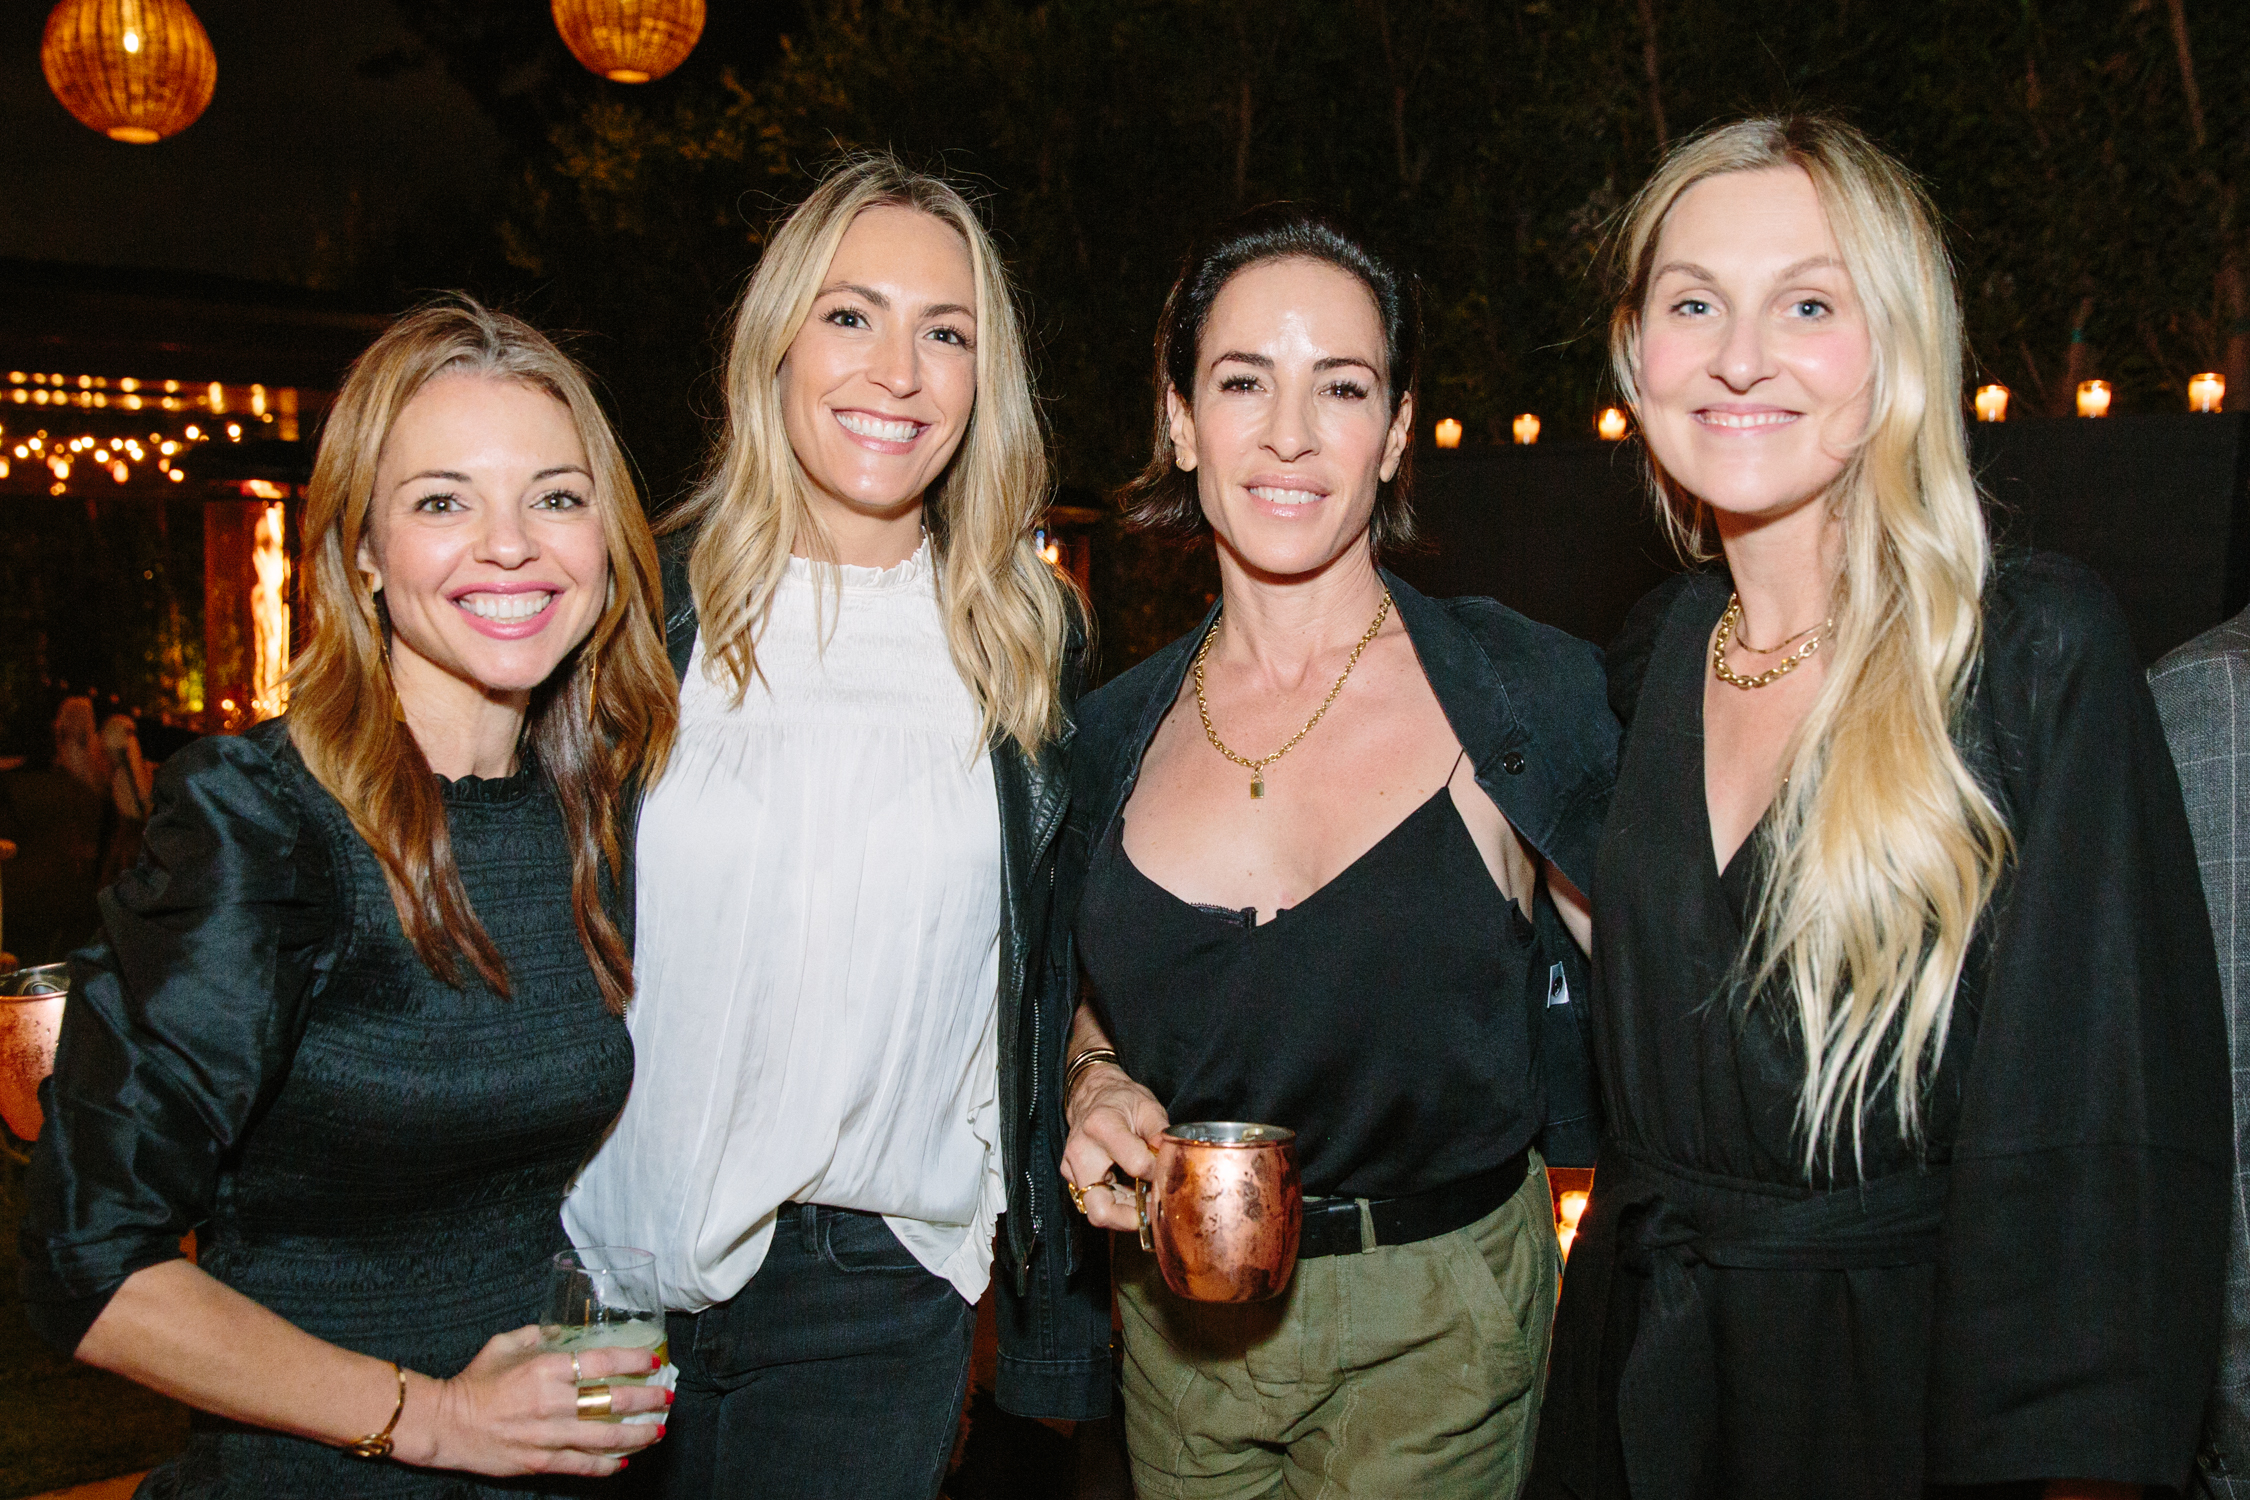 Shannon Wollack, Brittany Zwickl, Vanessa Alexander and Nina Freudenberger